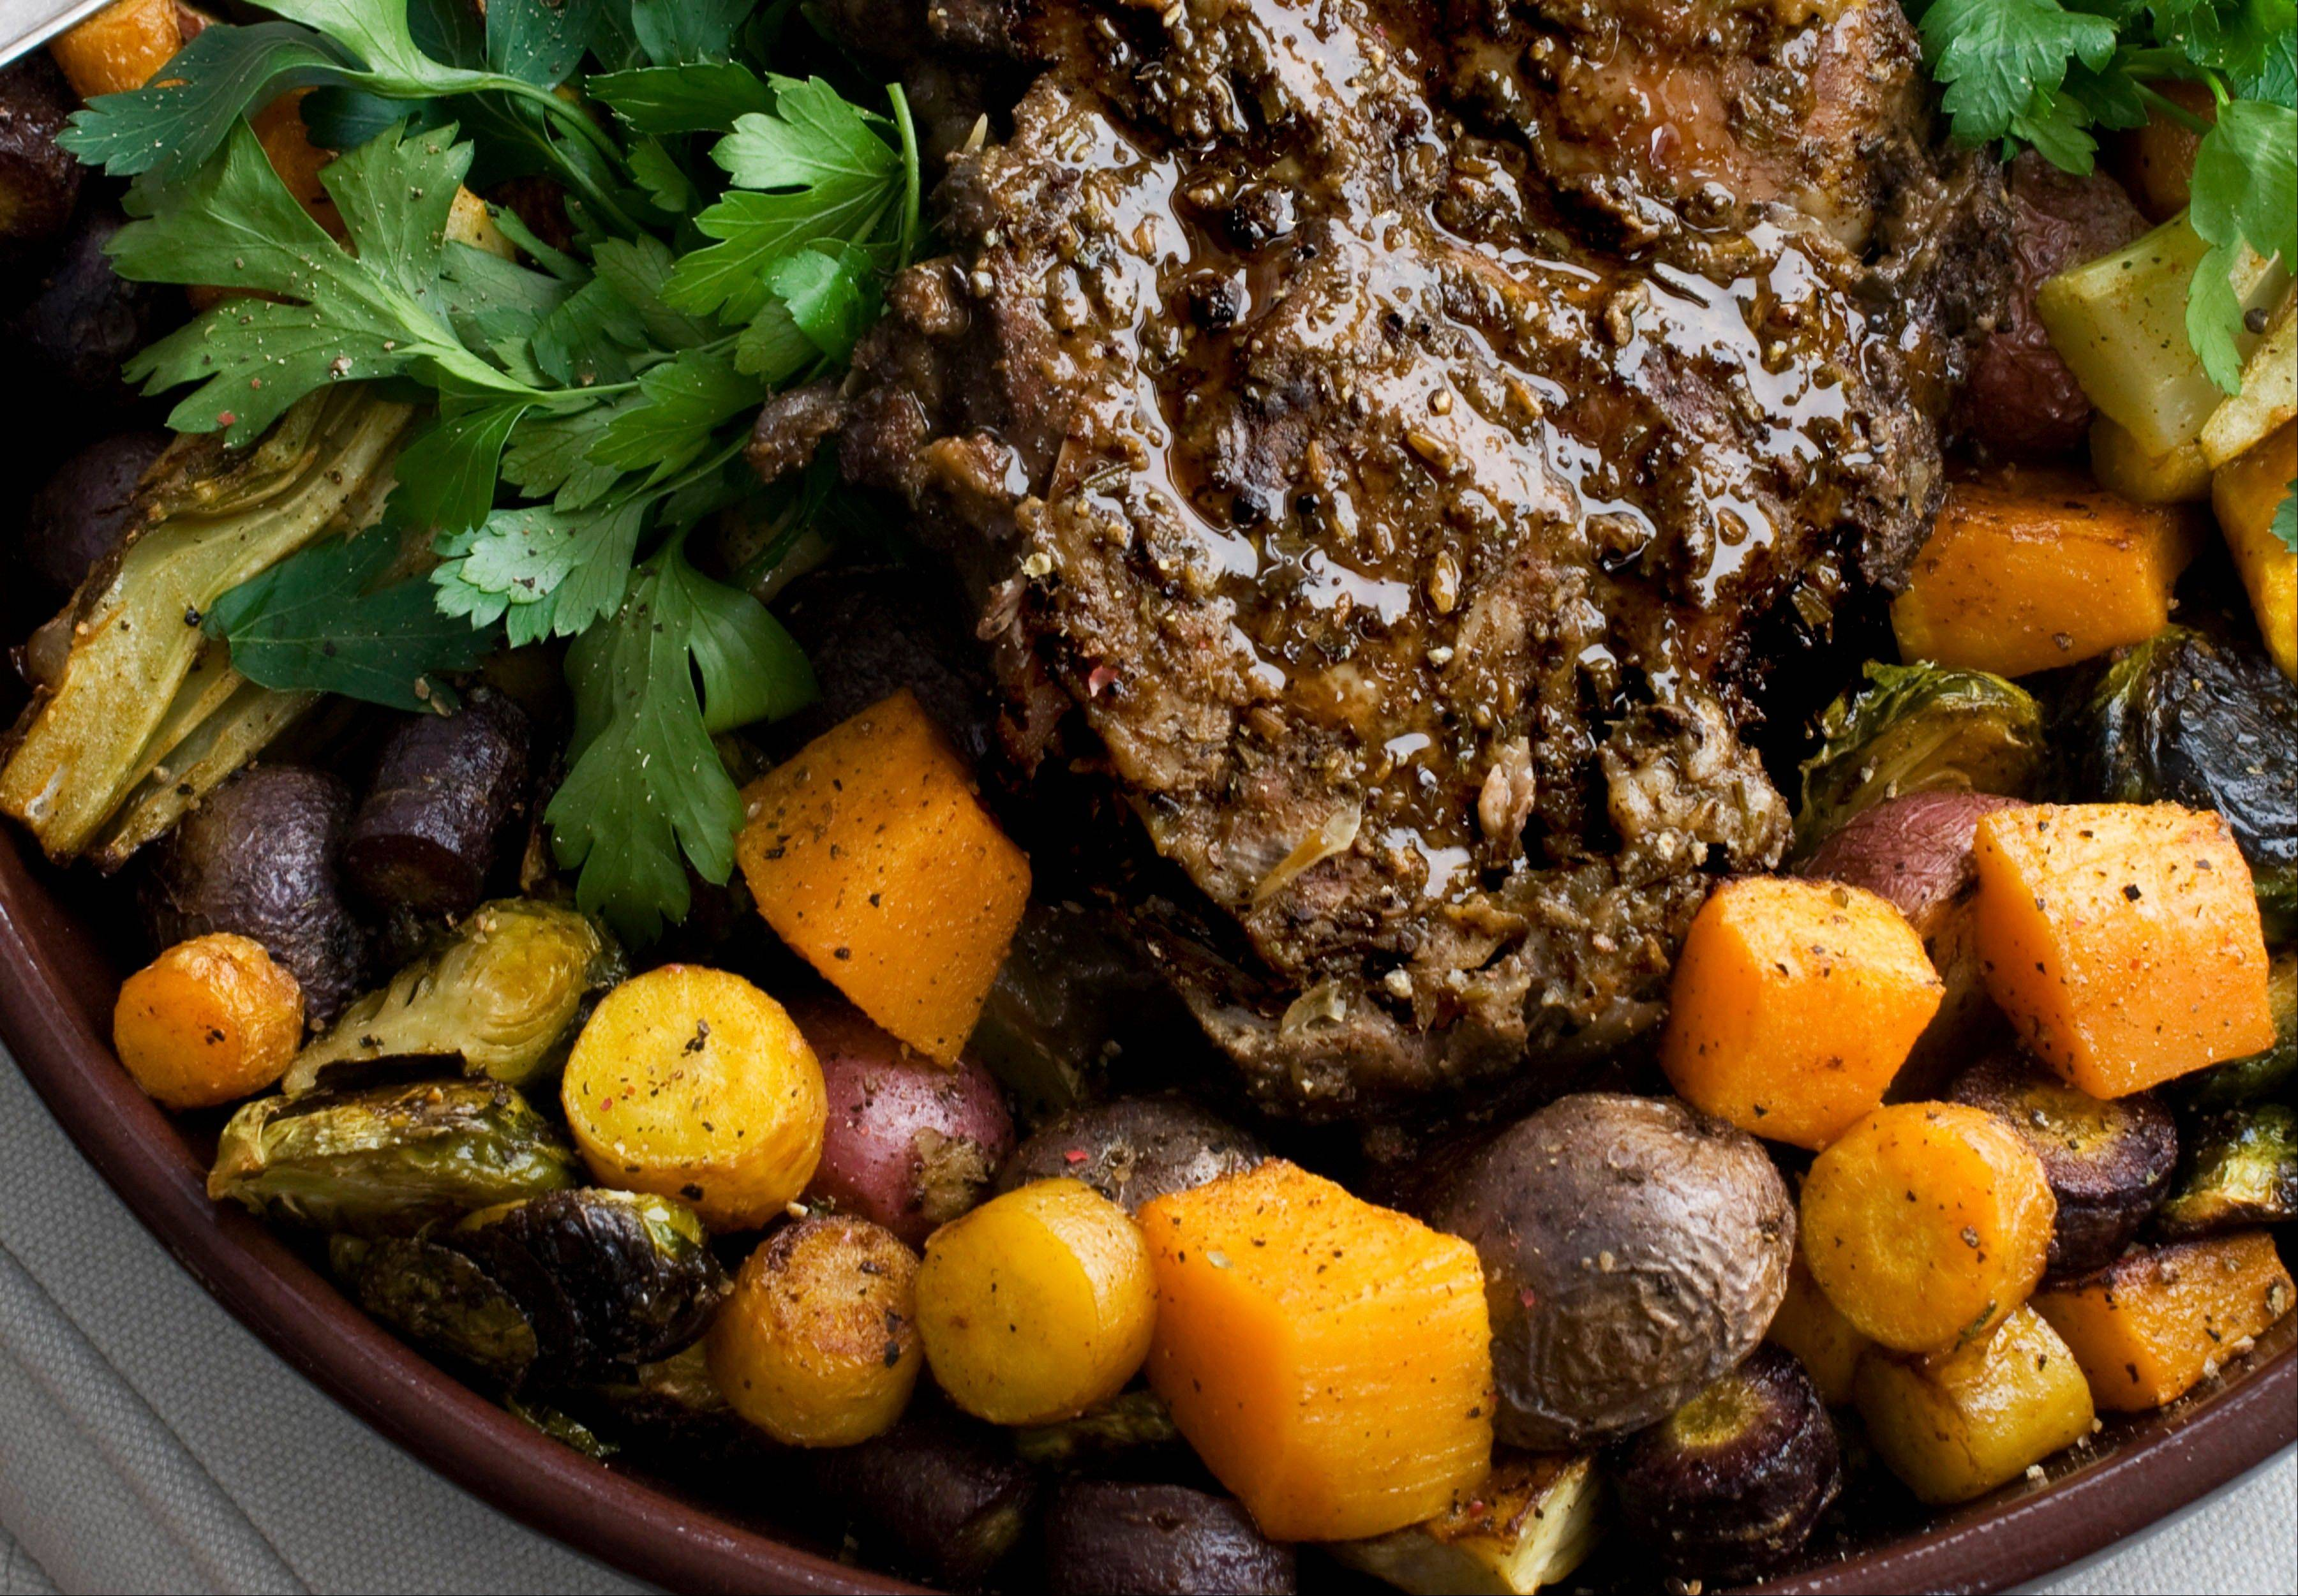 In this image taken on Jan. 28, 2013, roasted rosemary leg of goat is shown on a plate in Concord, N.H. (AP Photo/Matthew Mead)